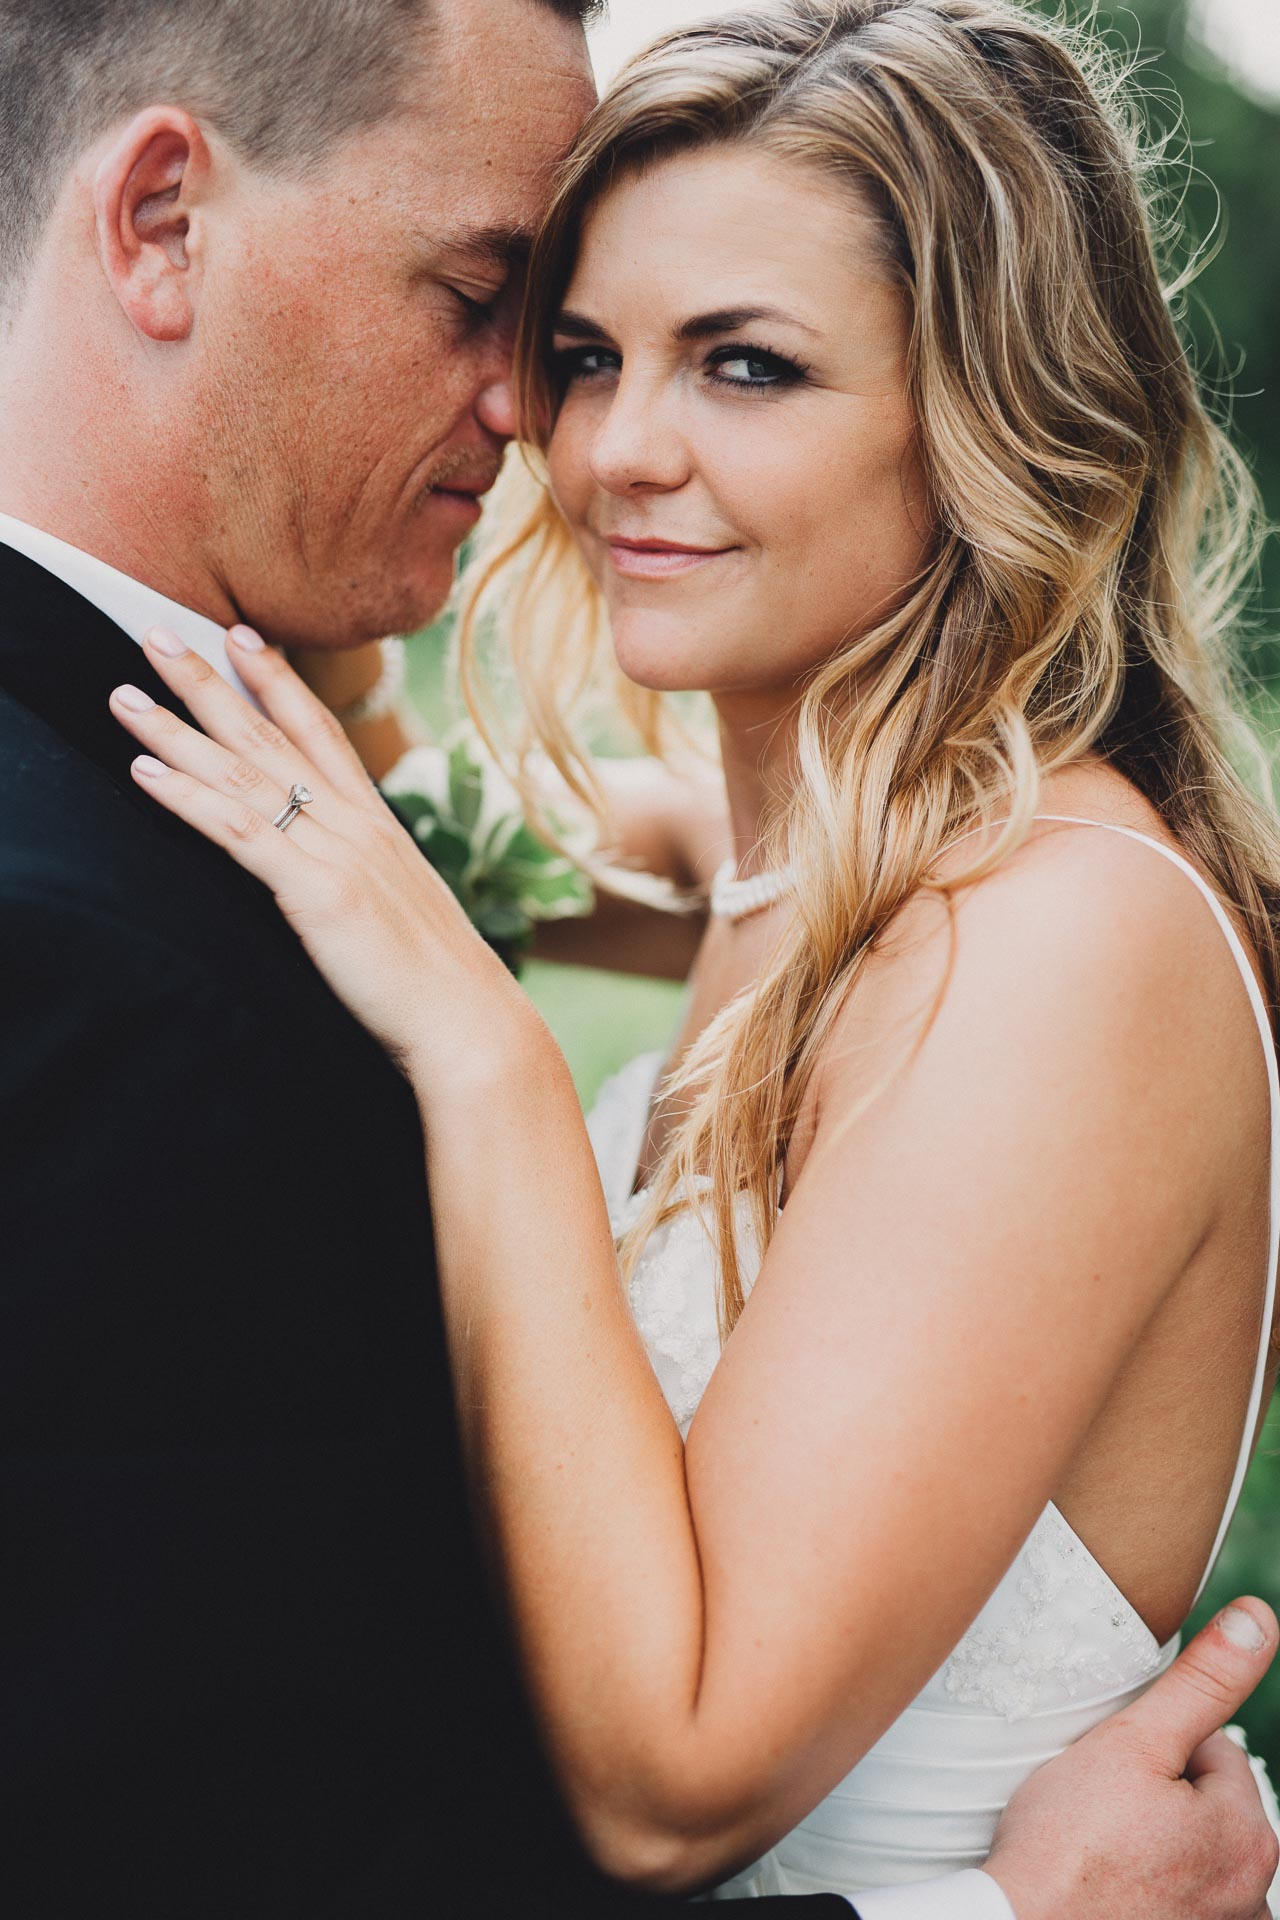 Stunning Natural Light Bride and Groom Portrait